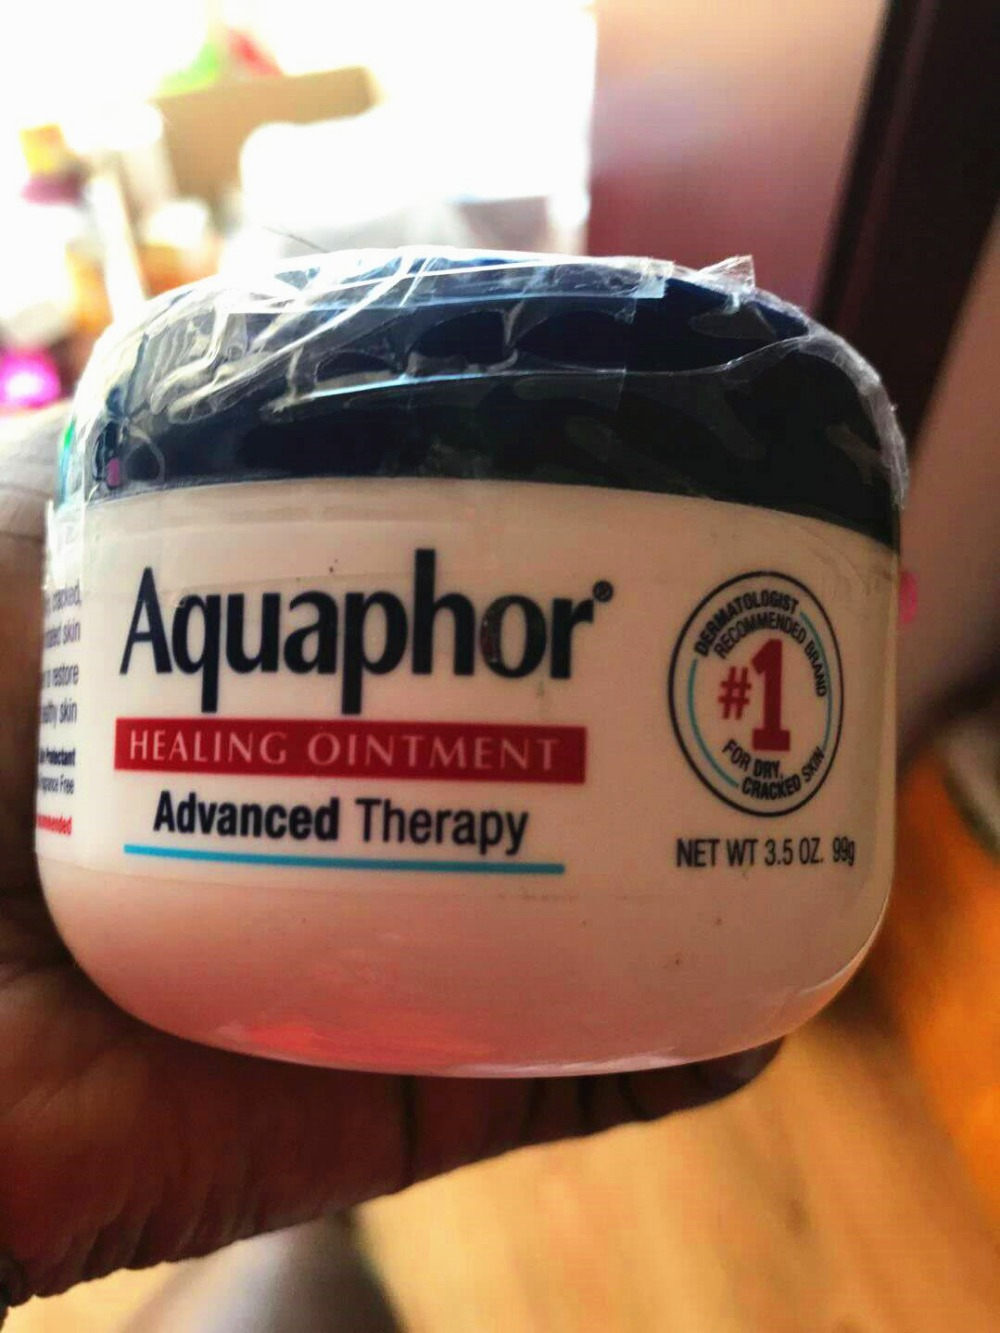 Aquaphor Advanced Therapy Healing Ointment Skin Protectant / 3.5oz exploring therapy spirituality and healing